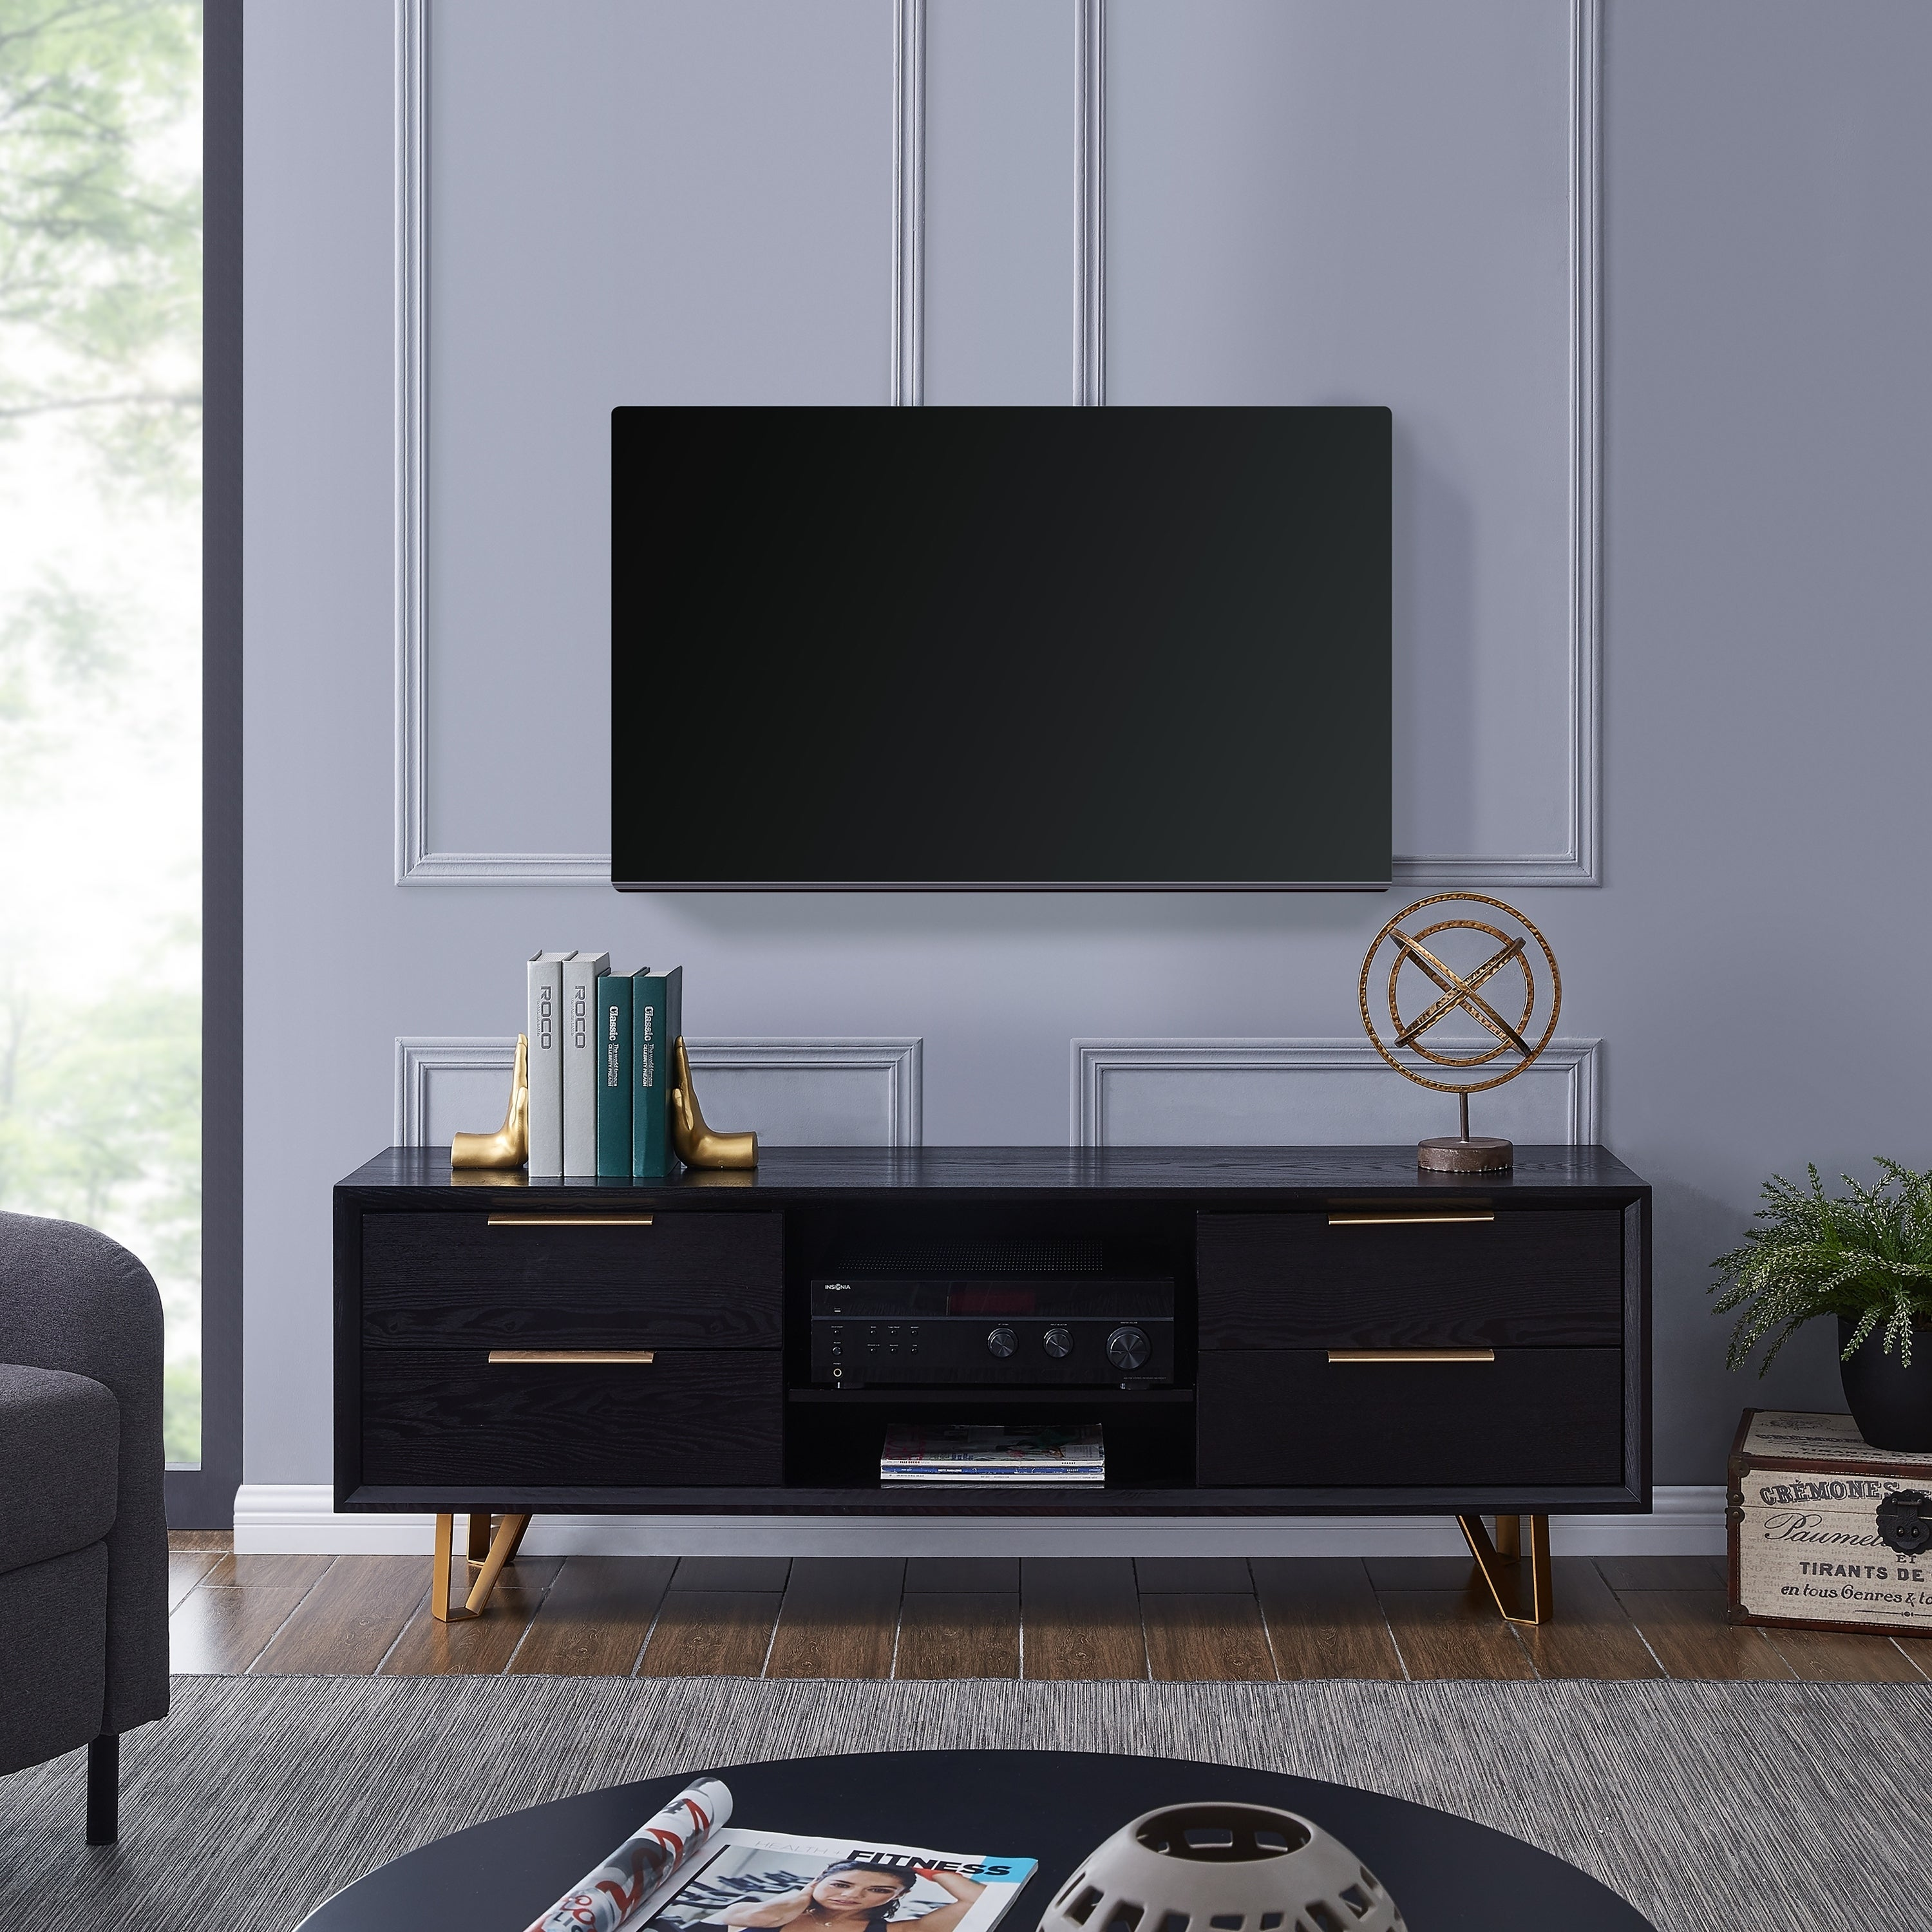 Roco furniture china top 10 brands Furniture Makers Harper Blvd Mableton Black Entertainment Console Irodrico Shop Harper Blvd Mableton Black Entertainment Console On Sale